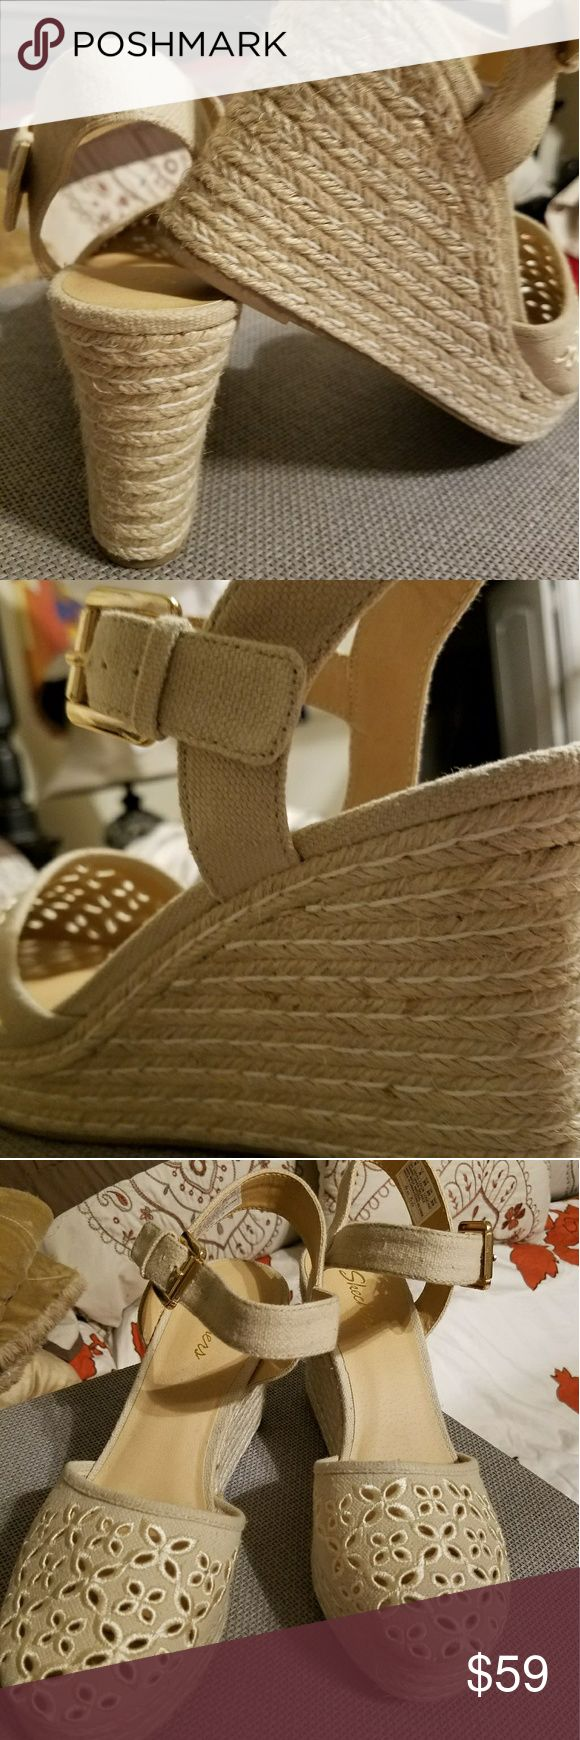 """🛍 Skecher wedges NWOT Cali Turtledove espadrille wedge sandal. Adjustable ankle strap with summery canvas eyelet cut out over vamp. Comfortable cushioned insole and balanced wedge. Platform height: 1 1/4"""" and heel height 3 1/4"""". Skechers Shoes Wedges"""